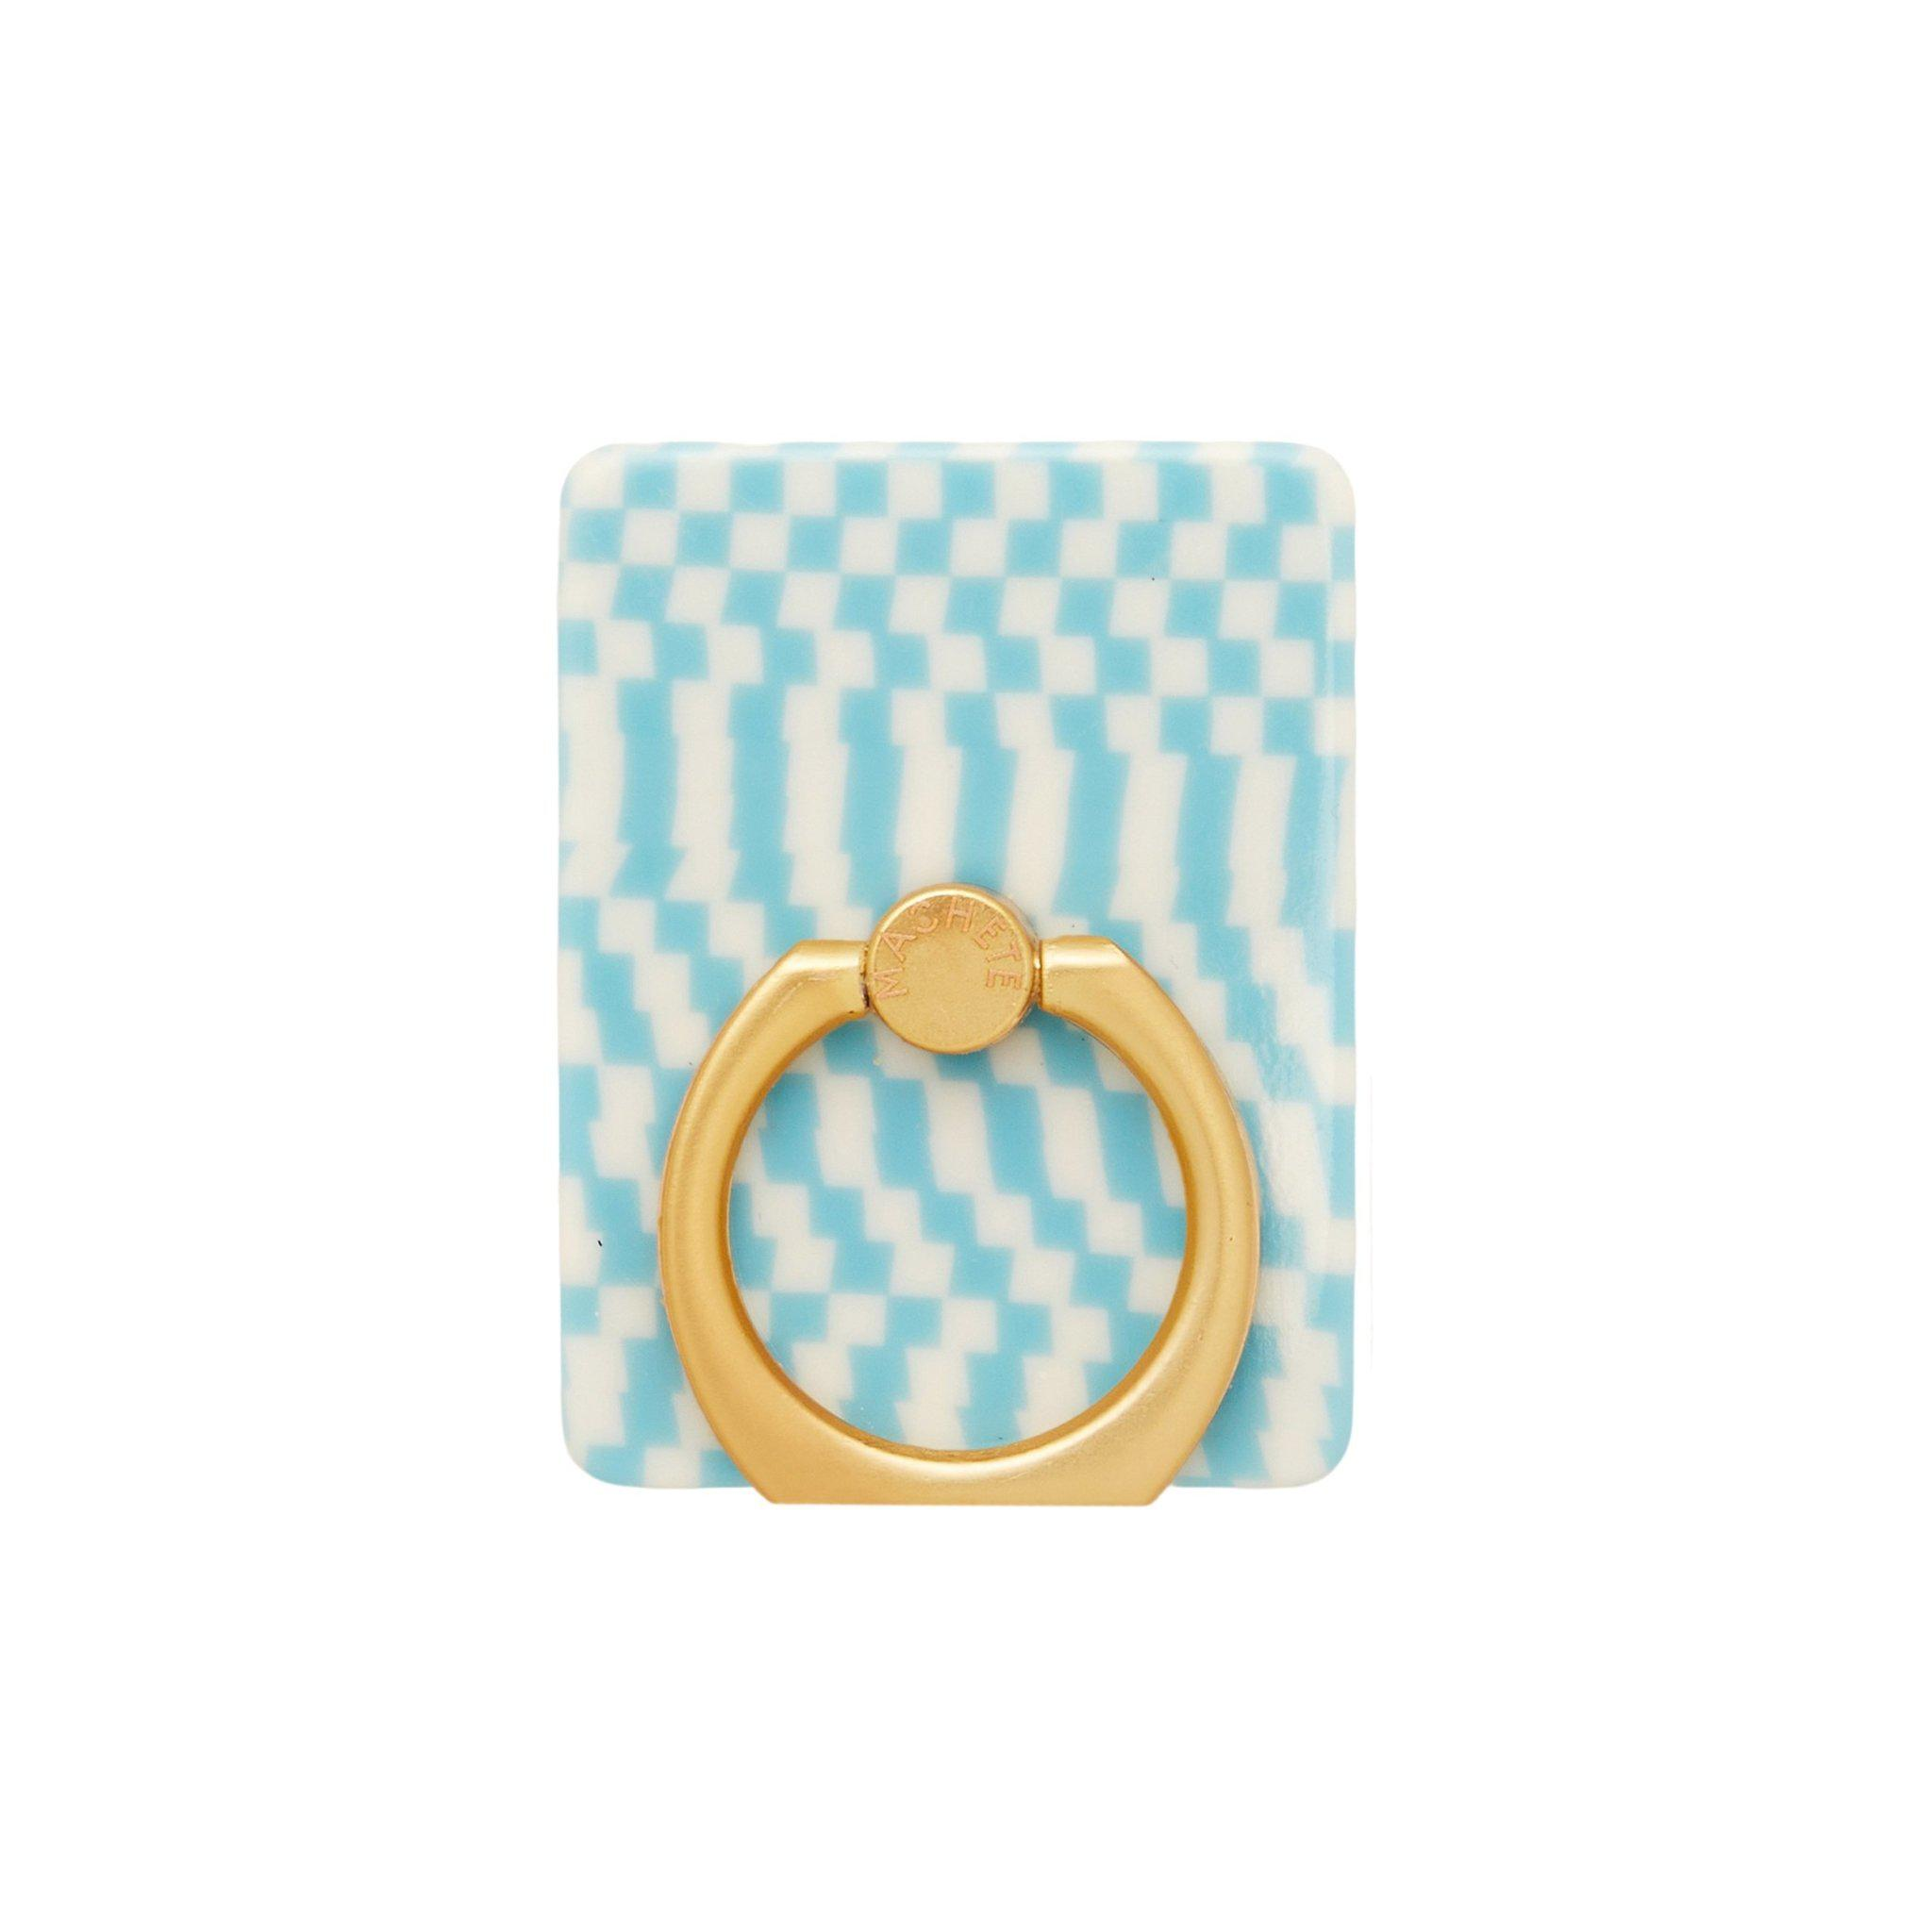 Phone Ring in Blue Checker